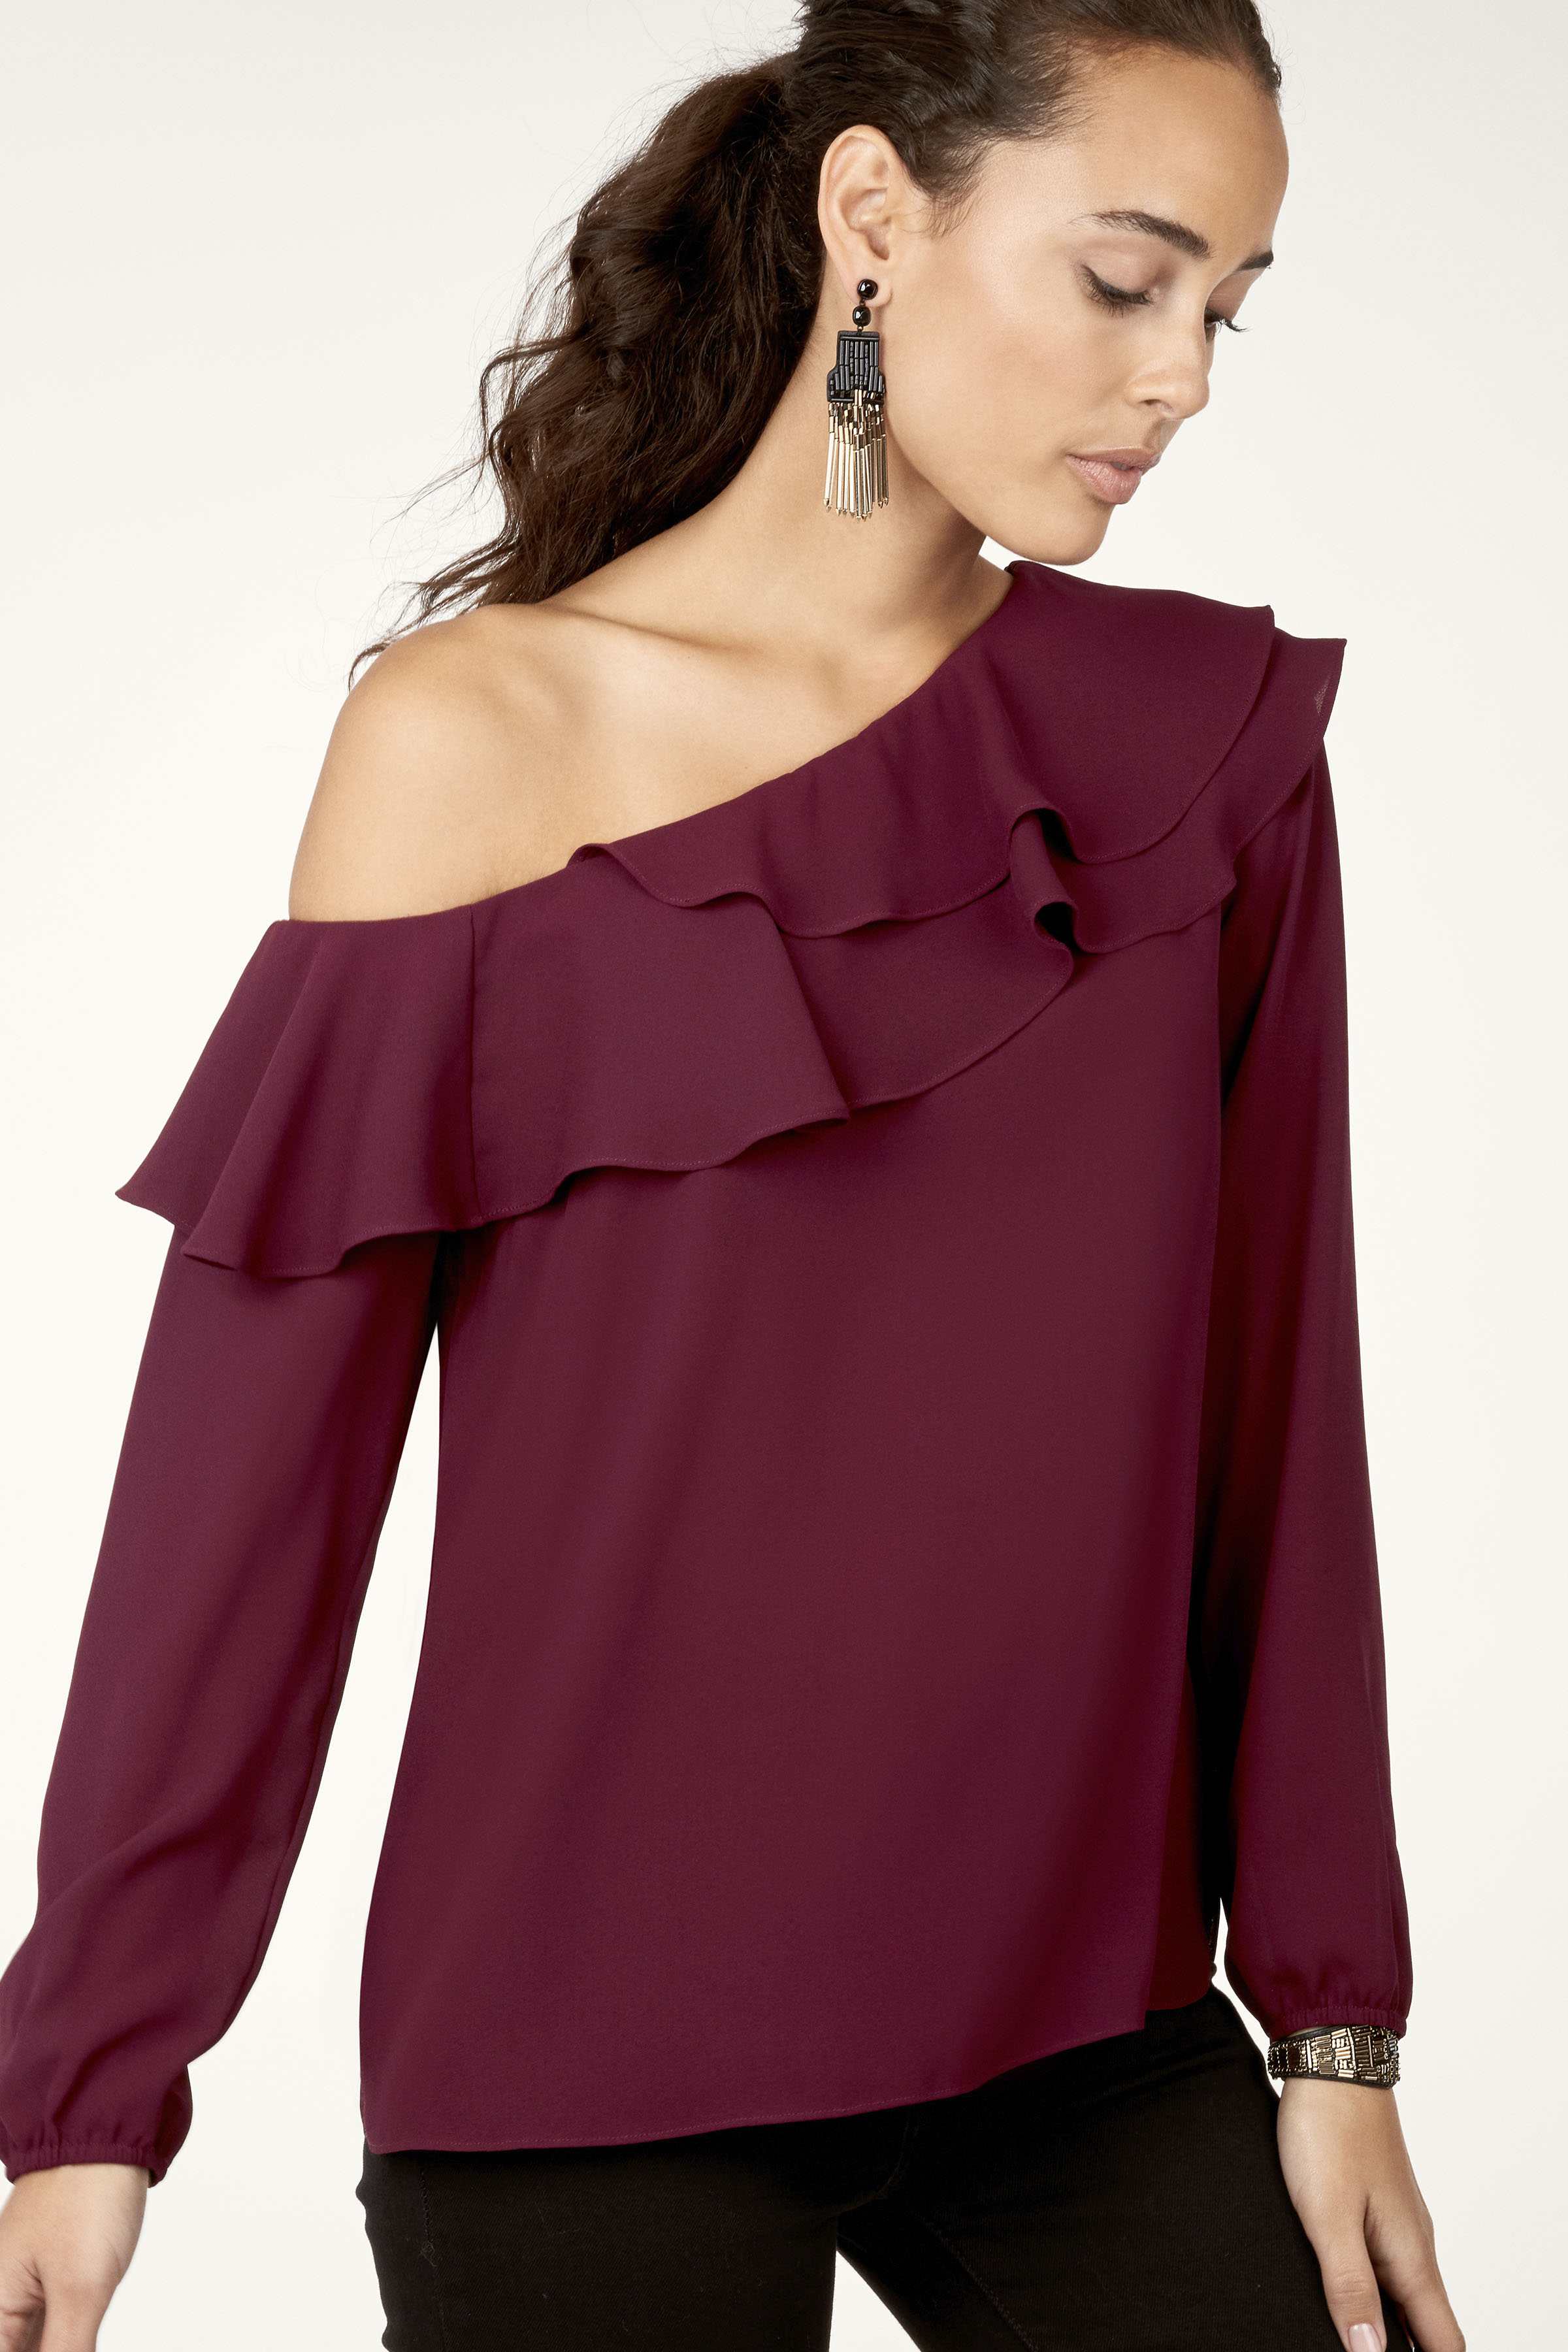 Stella & Dot gift guide - Roz one shoulder top